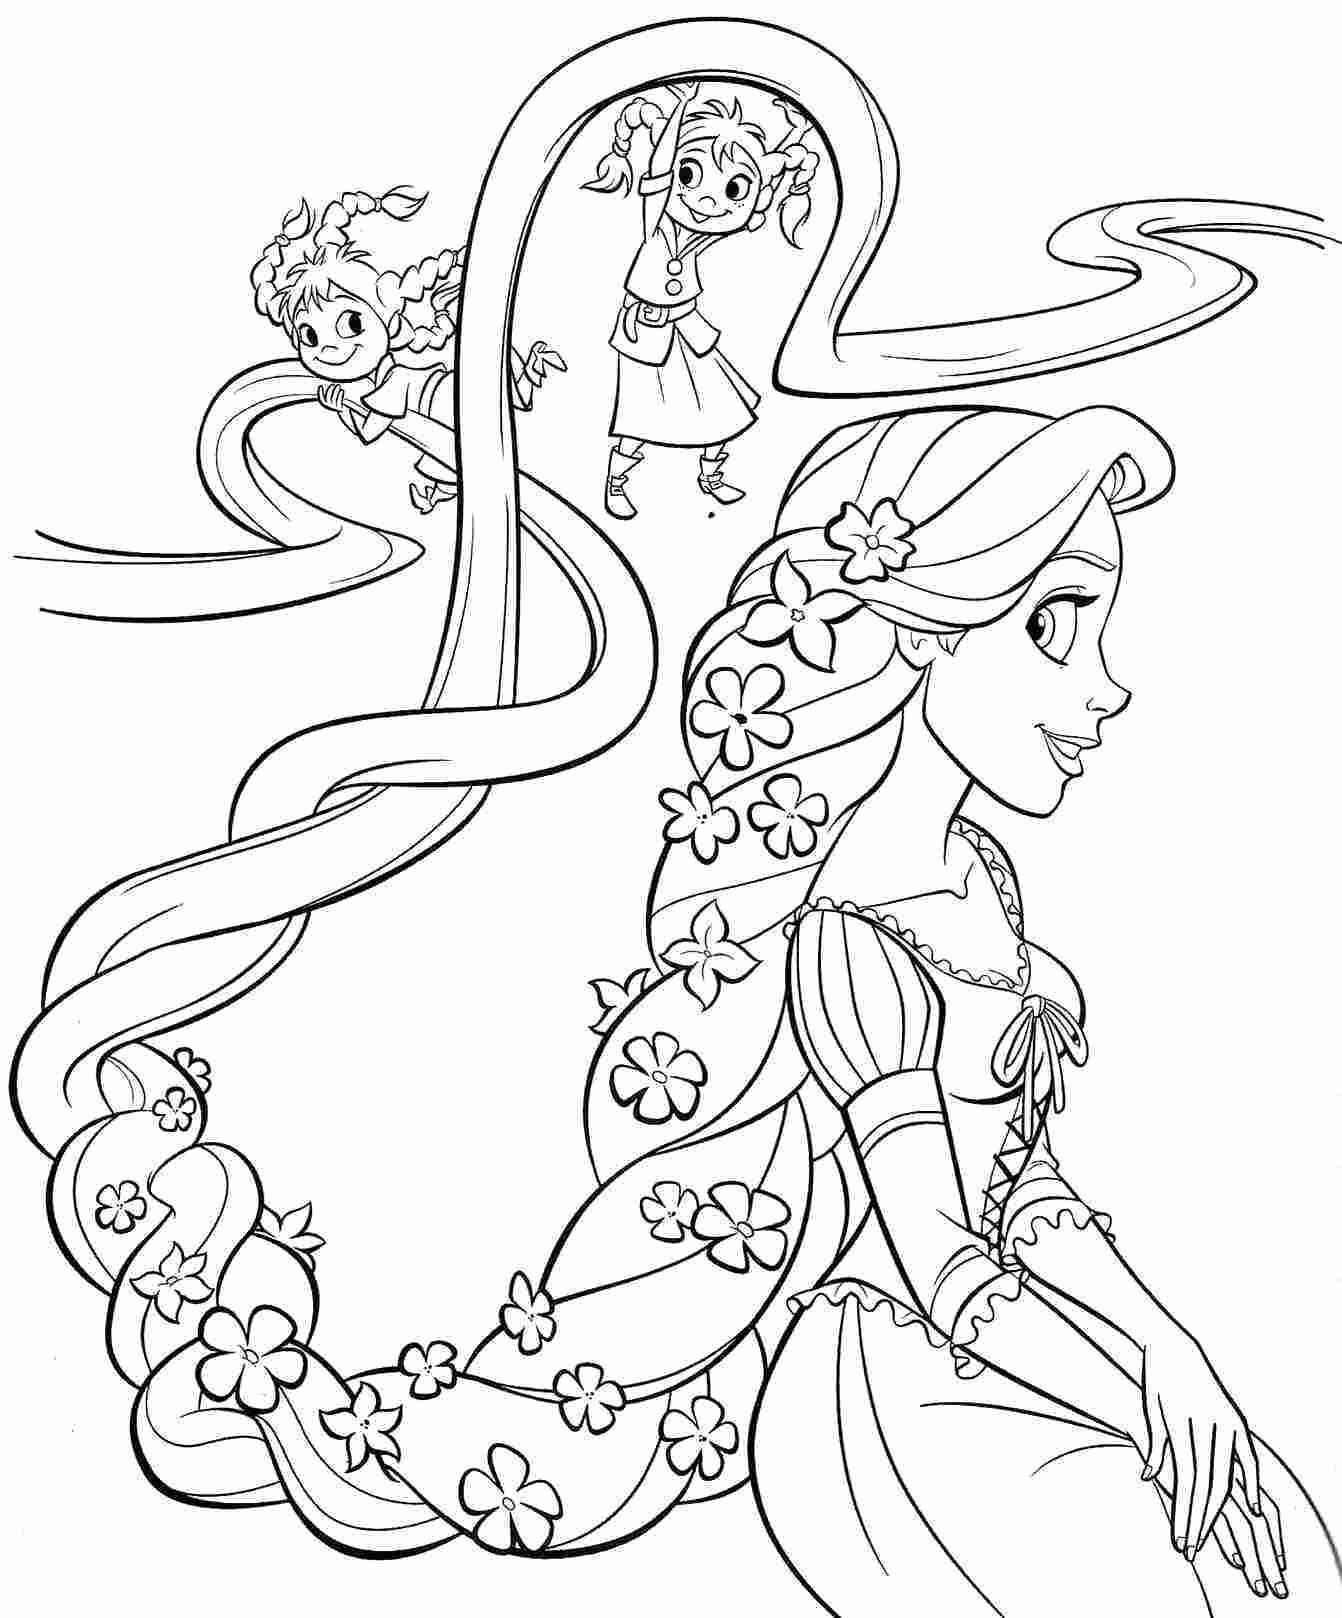 Realistic Princess Coloring Pages For Kids In 2020 Tangled Coloring Pages Disney Coloring Sheets Disney Princess Coloring Pages